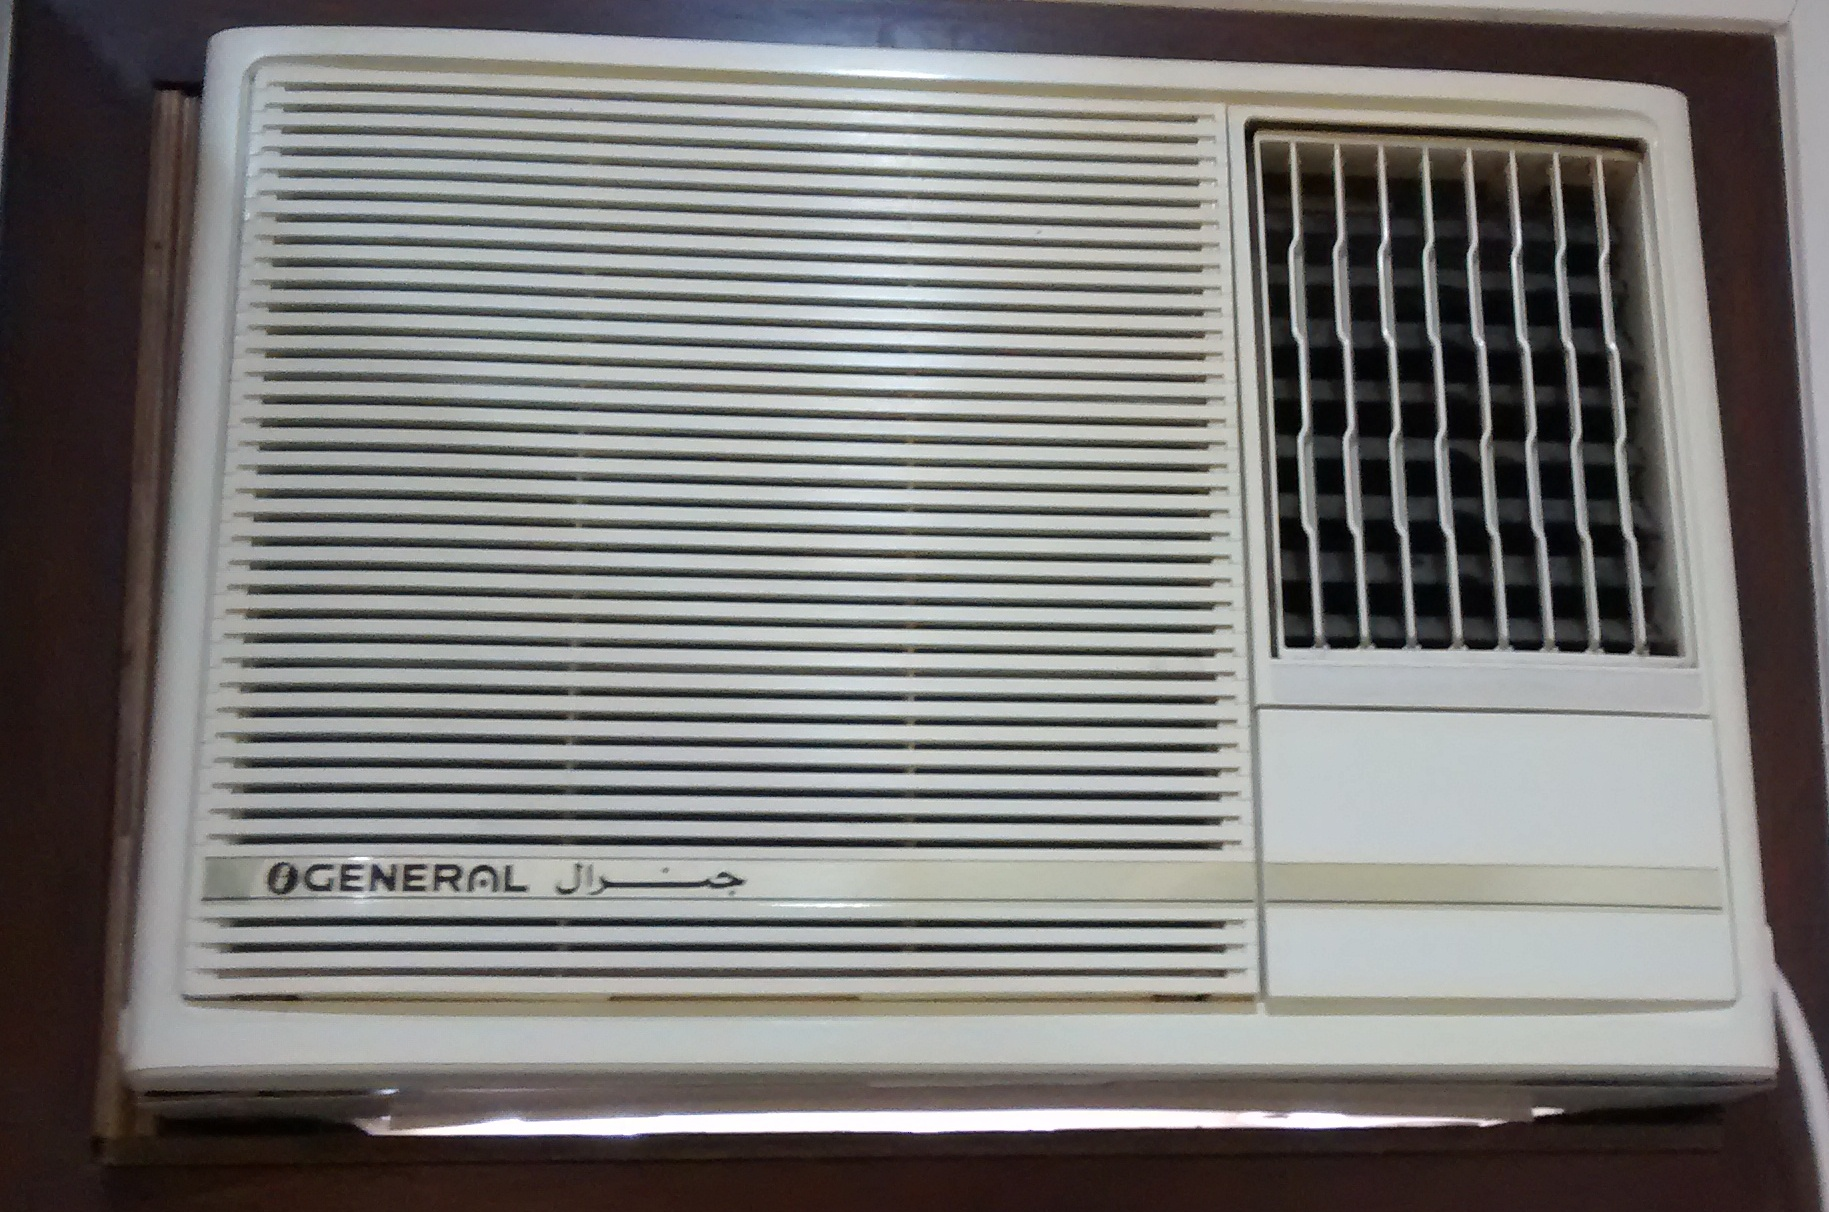 General Airconditioners - Wikipedia